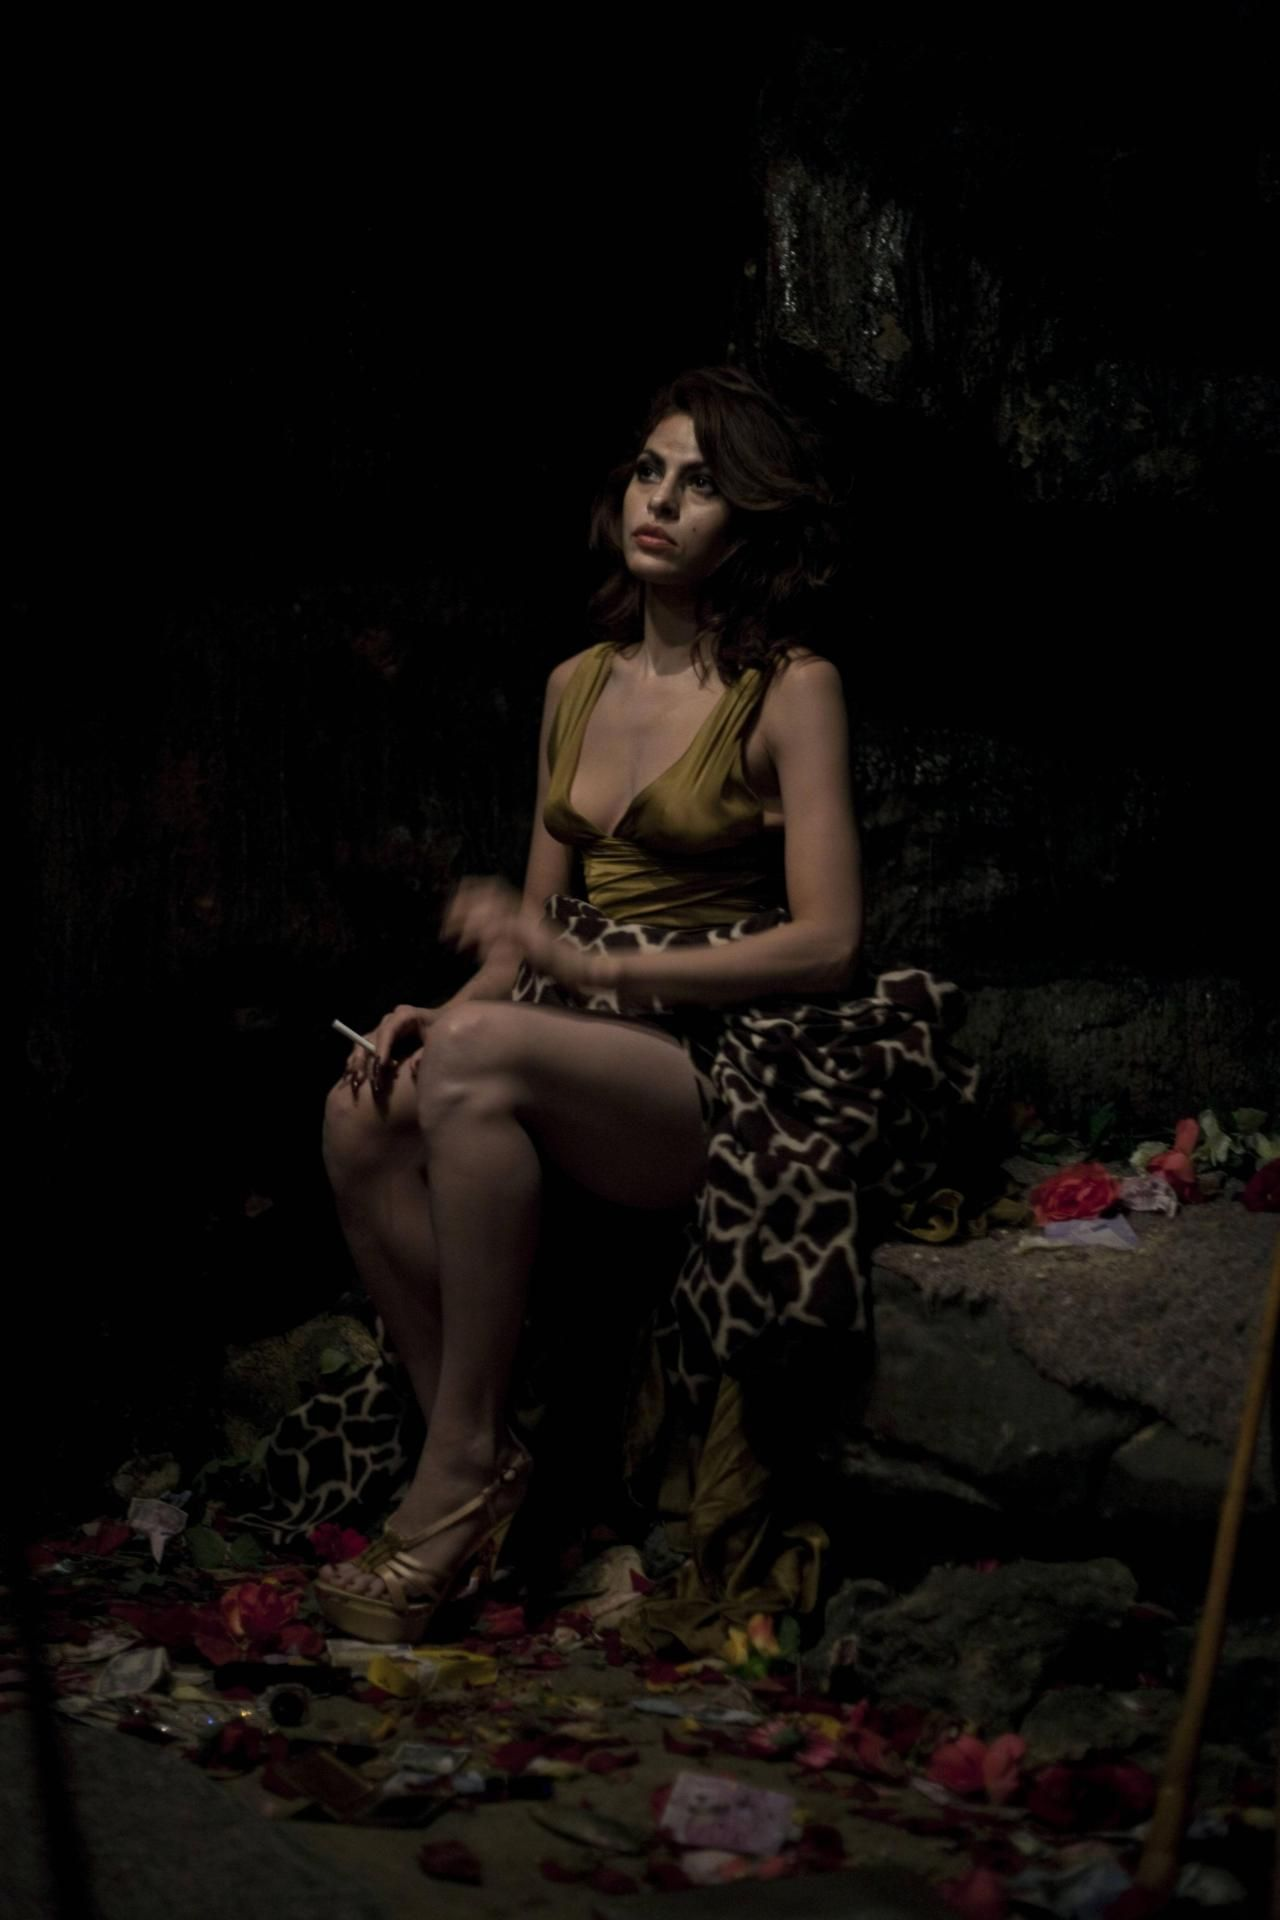 Eva Mendes as Kay M. in Holy Motors directed by Leos Carax, 2012